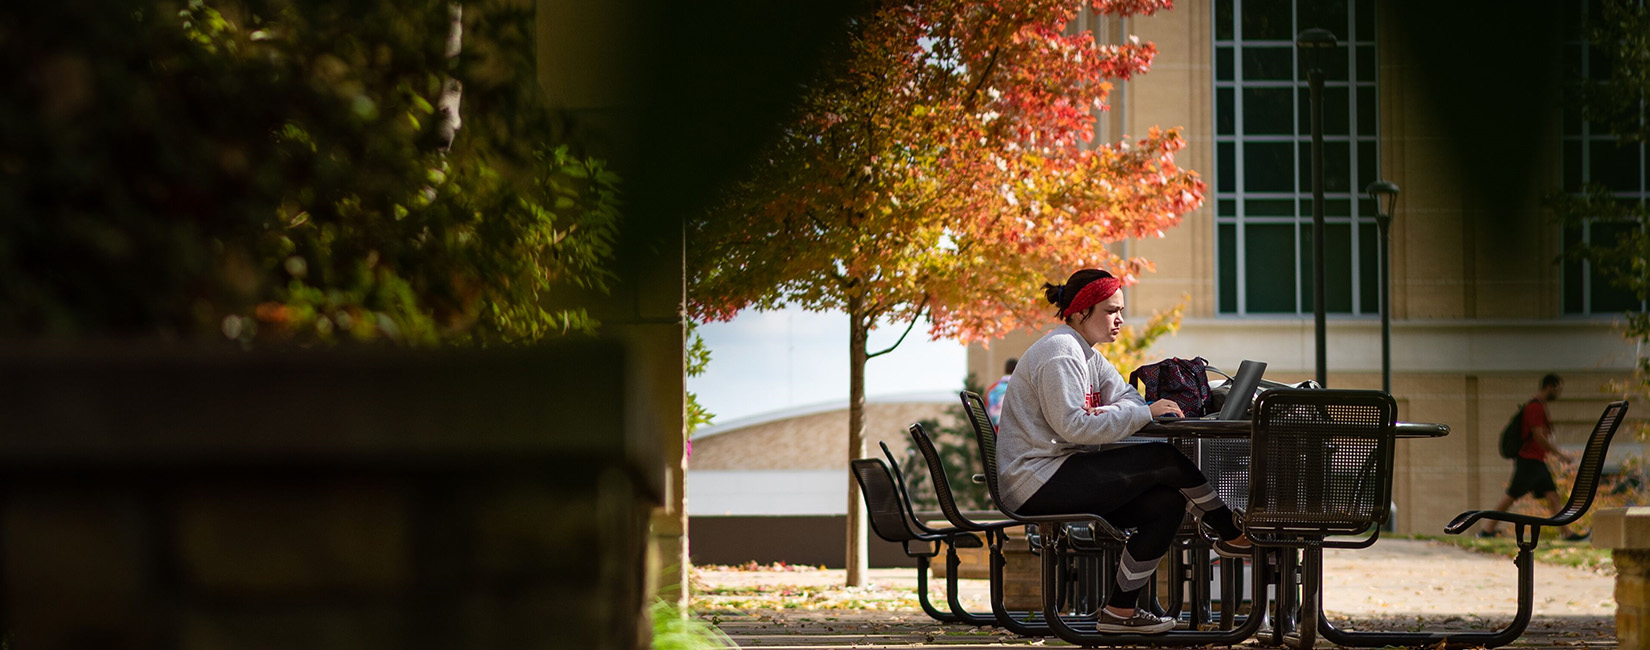 Ohio State University Student studying outside in fall weather.